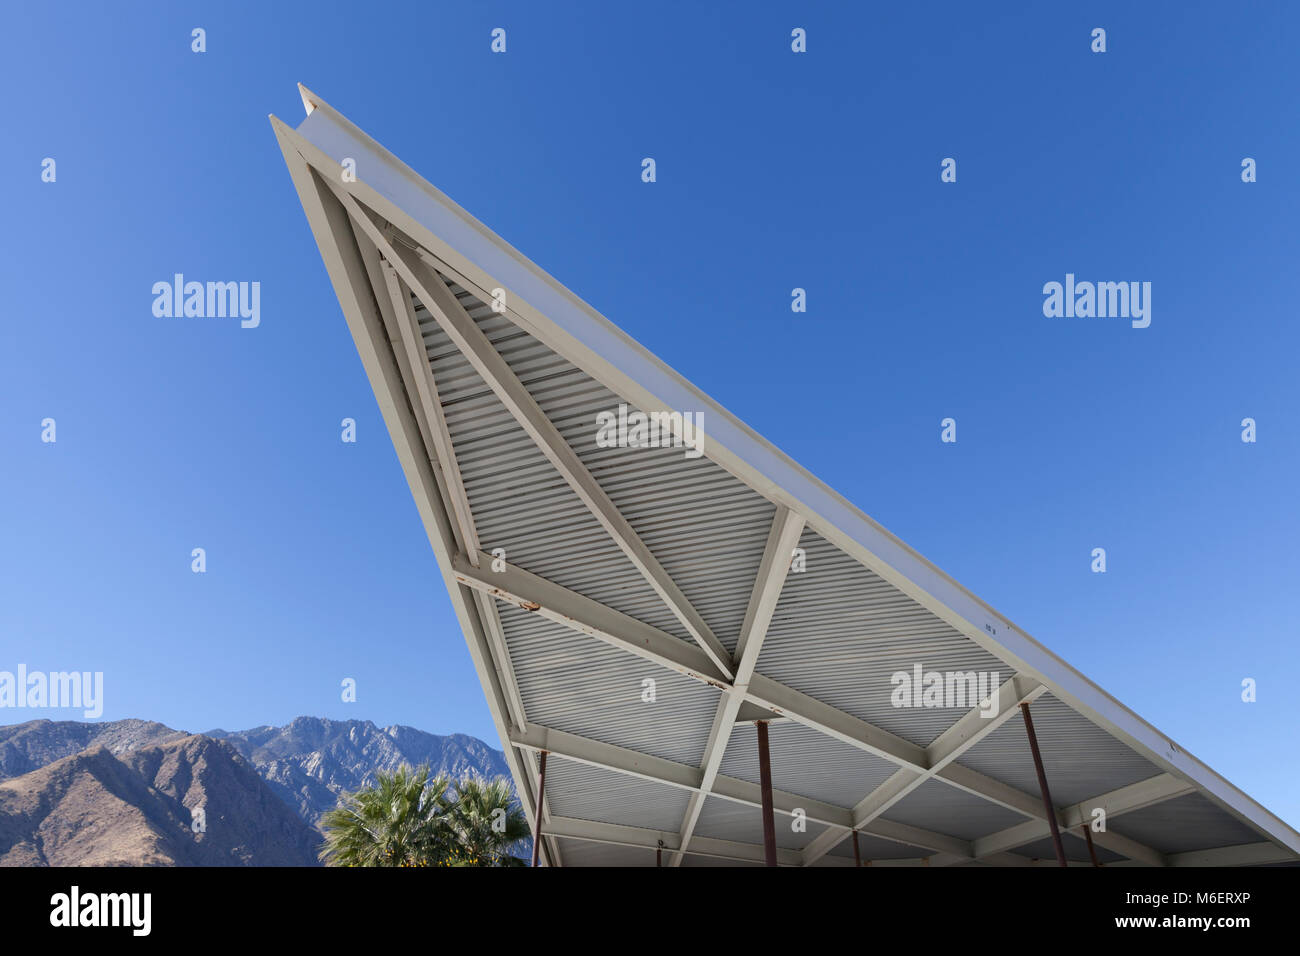 Palm Springs California The distinctive cantilevered canopy of the Tramway Gas Station. The 60u0027s era modernist landmark has operated as the Palm Sp & Palm Springs California: The distinctive cantilevered canopy of the ...